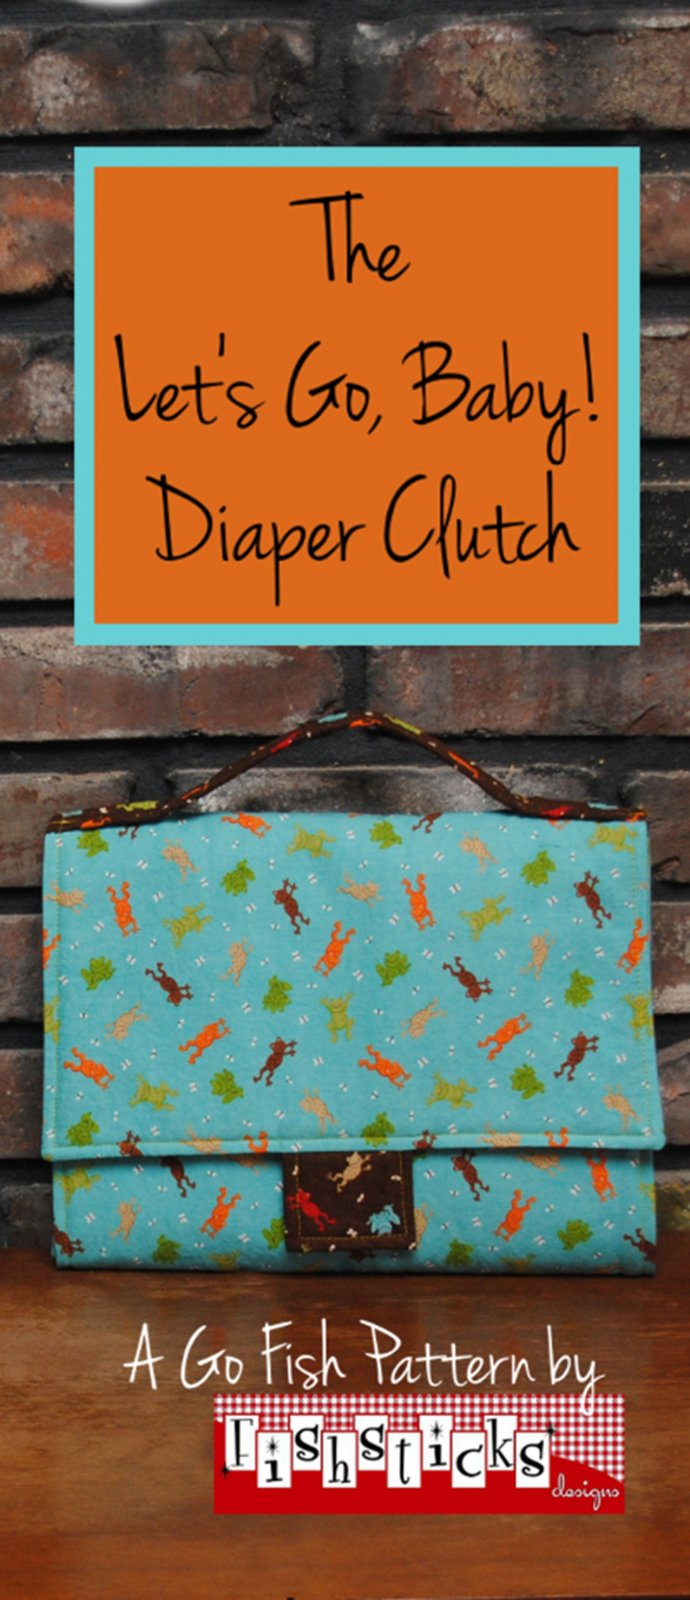 Let's Go Baby! Diaper Clutch